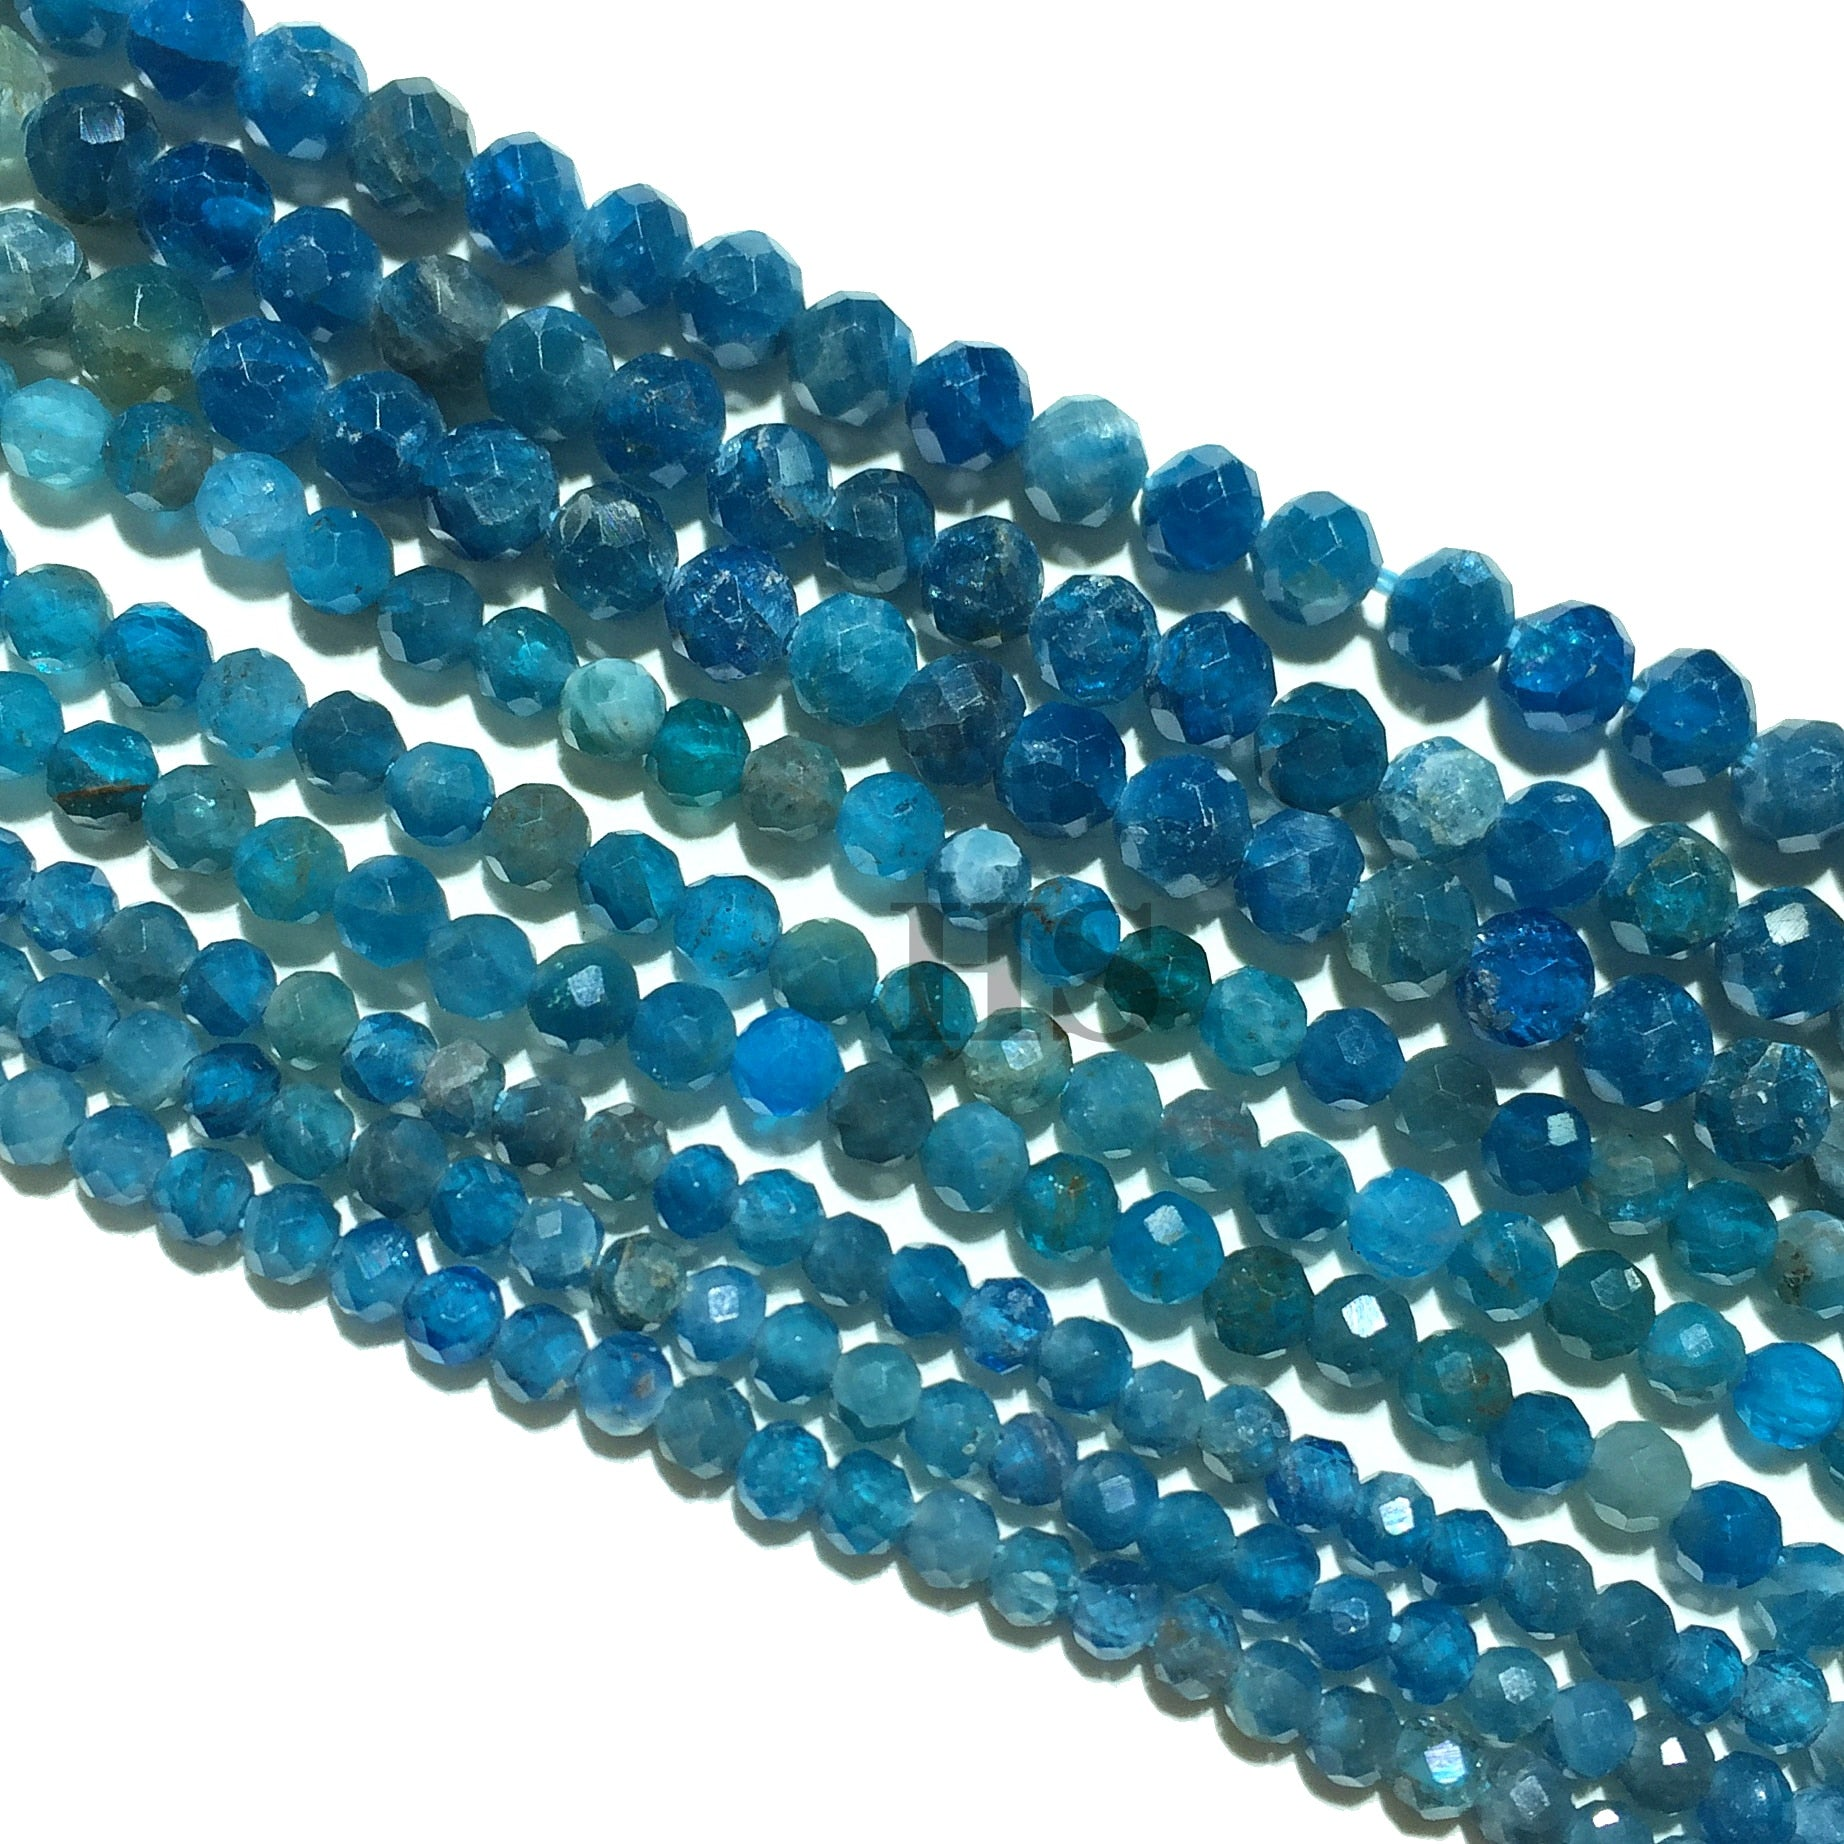 Blue Apatite Small Faceted Beads 2mm 3mm 4mm